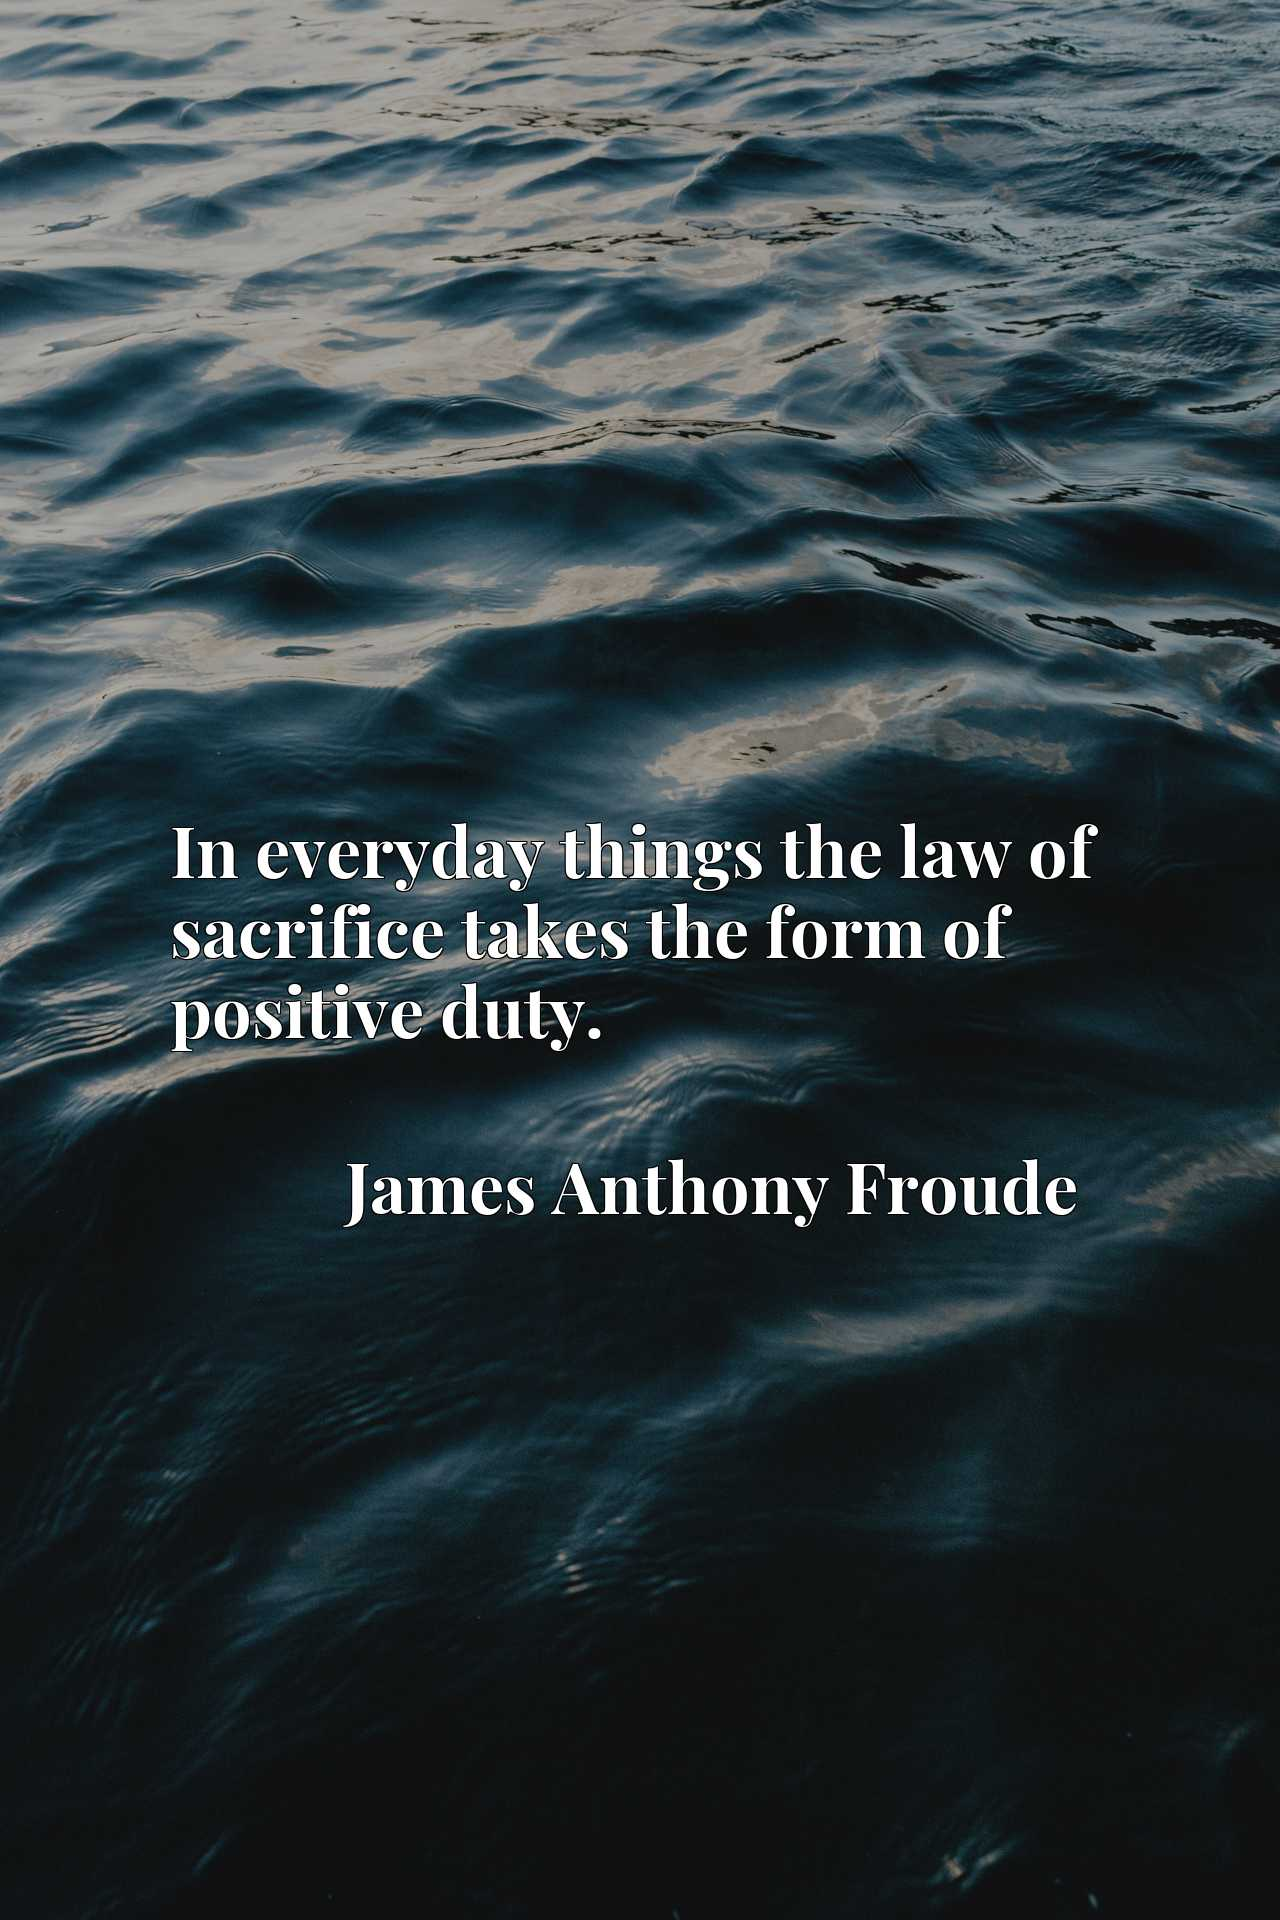 Quote Picture :In everyday things the law of sacrifice takes the form of positive duty.